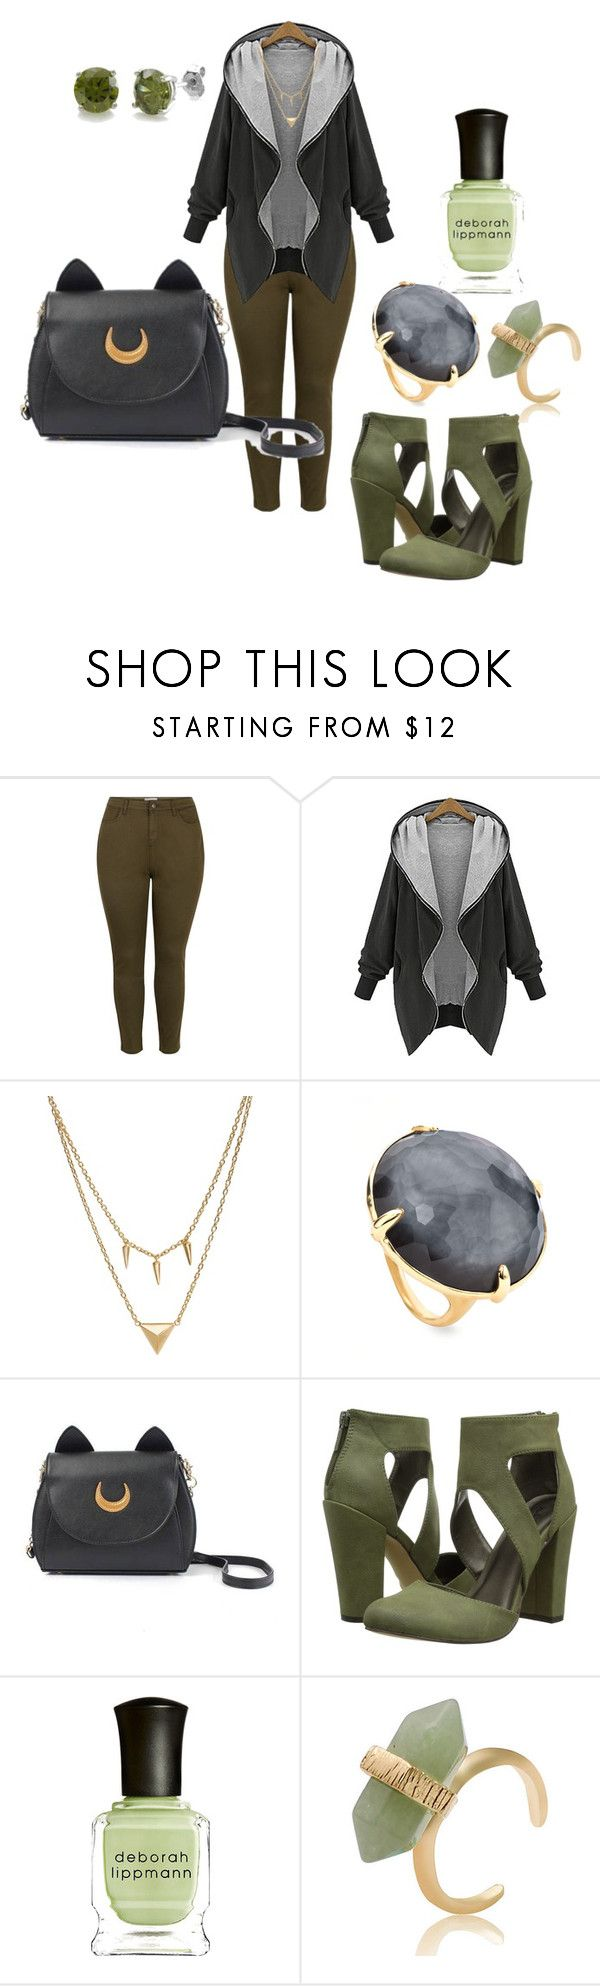 """Natural Casual Plussize outfiT"" by migalowa on Polyvore featuring Edge of Ember, Ippolita, Michael Antonio, Deborah Lippmann, BERRICLE, women's clothing, women's fashion, women, female and woman"